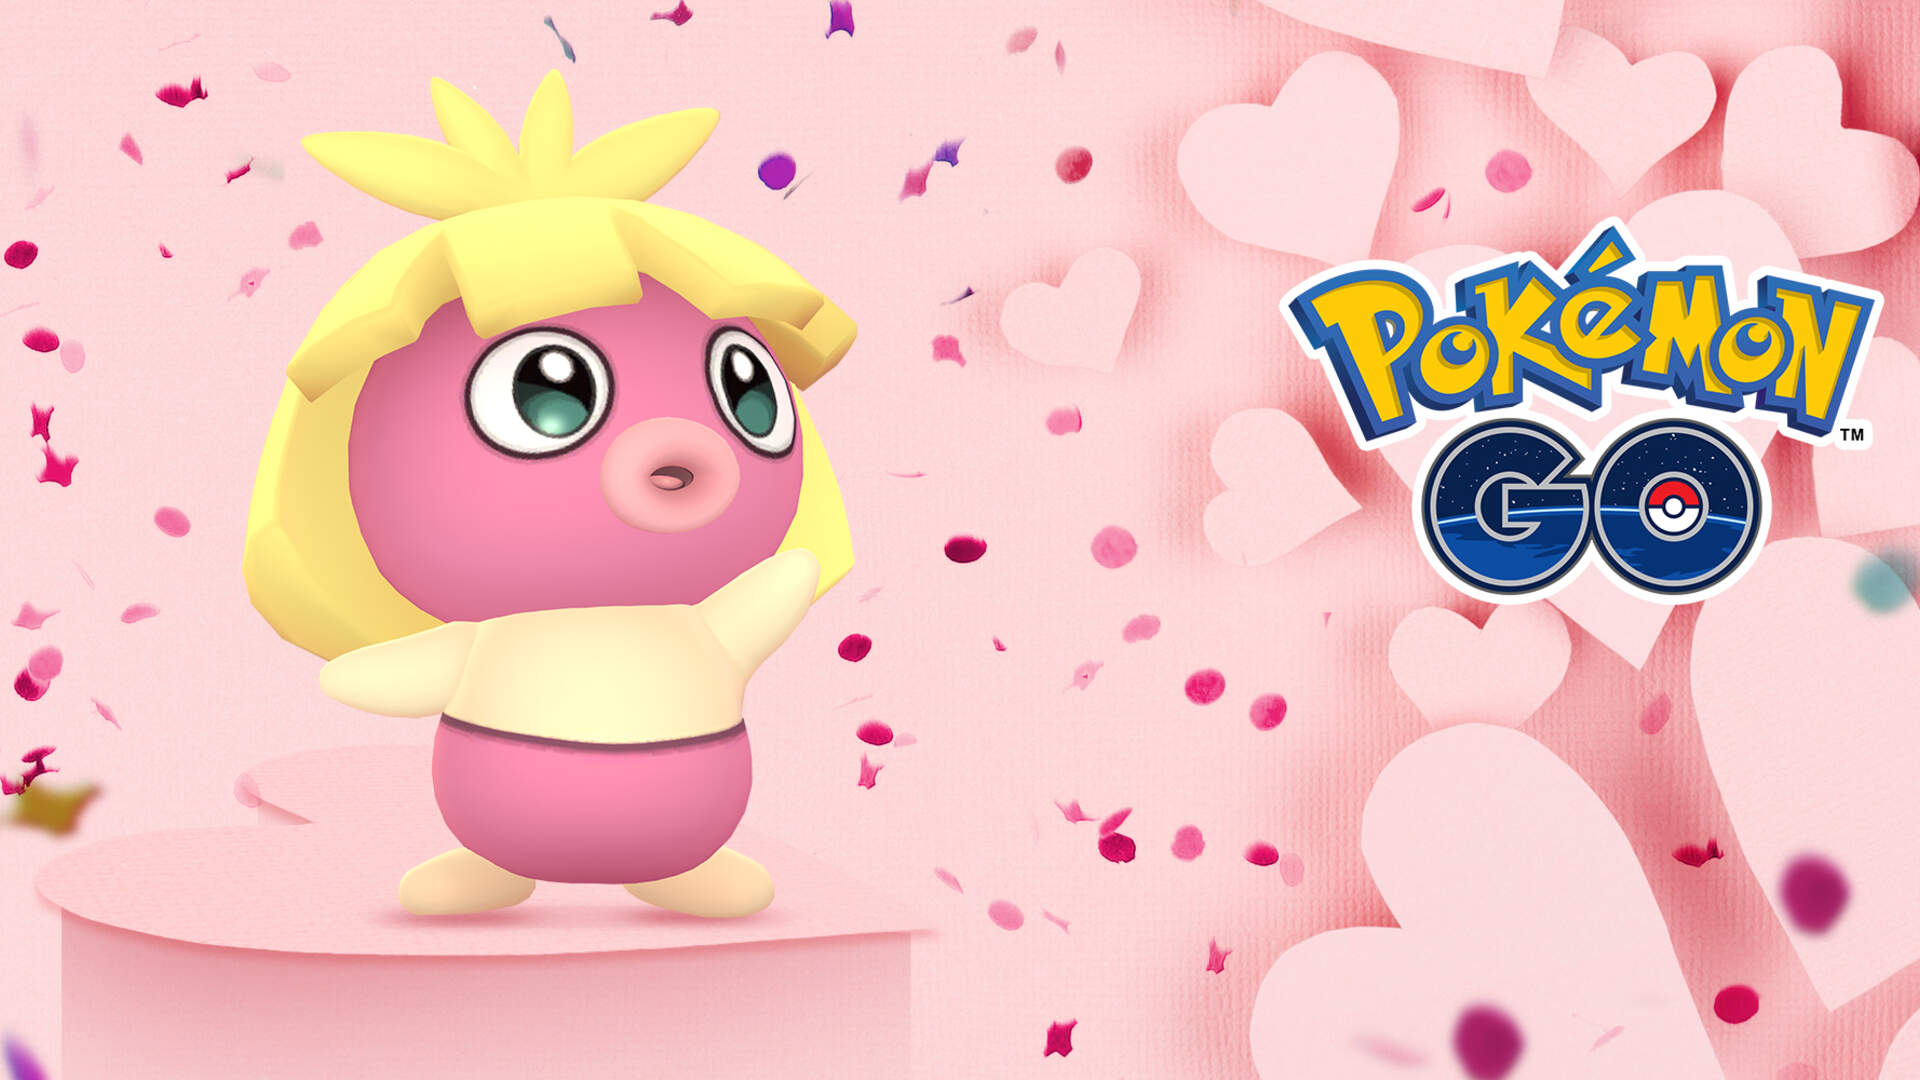 Pokemon Go Valentine's Day Celebration - Date and Time, Double Candy, Six-Hour Lures